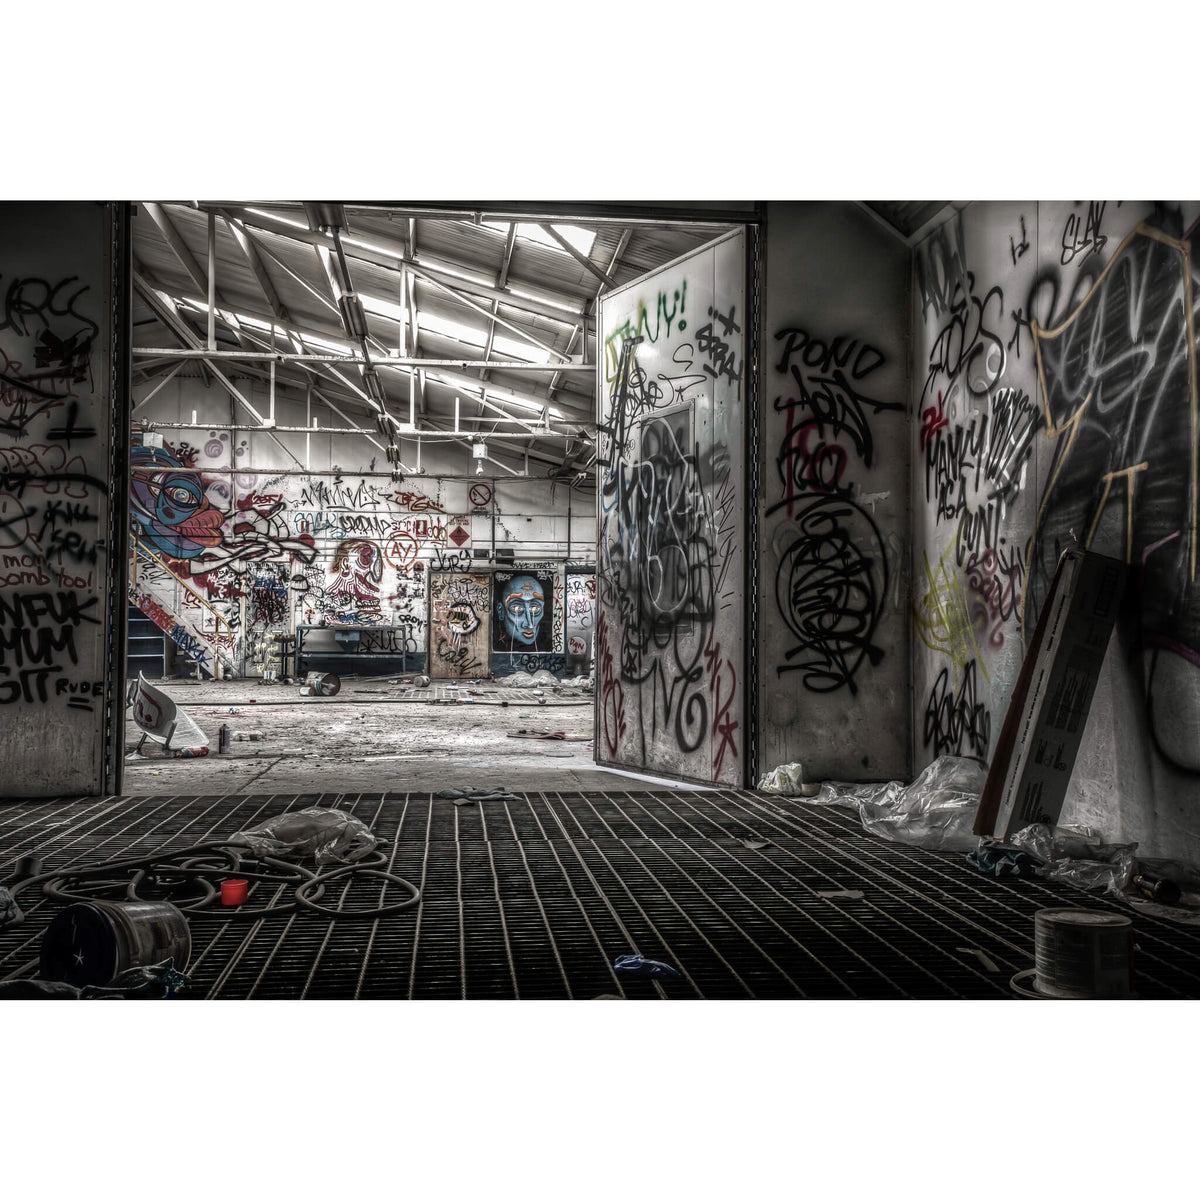 Spray Booth | Sundell Holden Fine Art Print - Lost Collective Shop